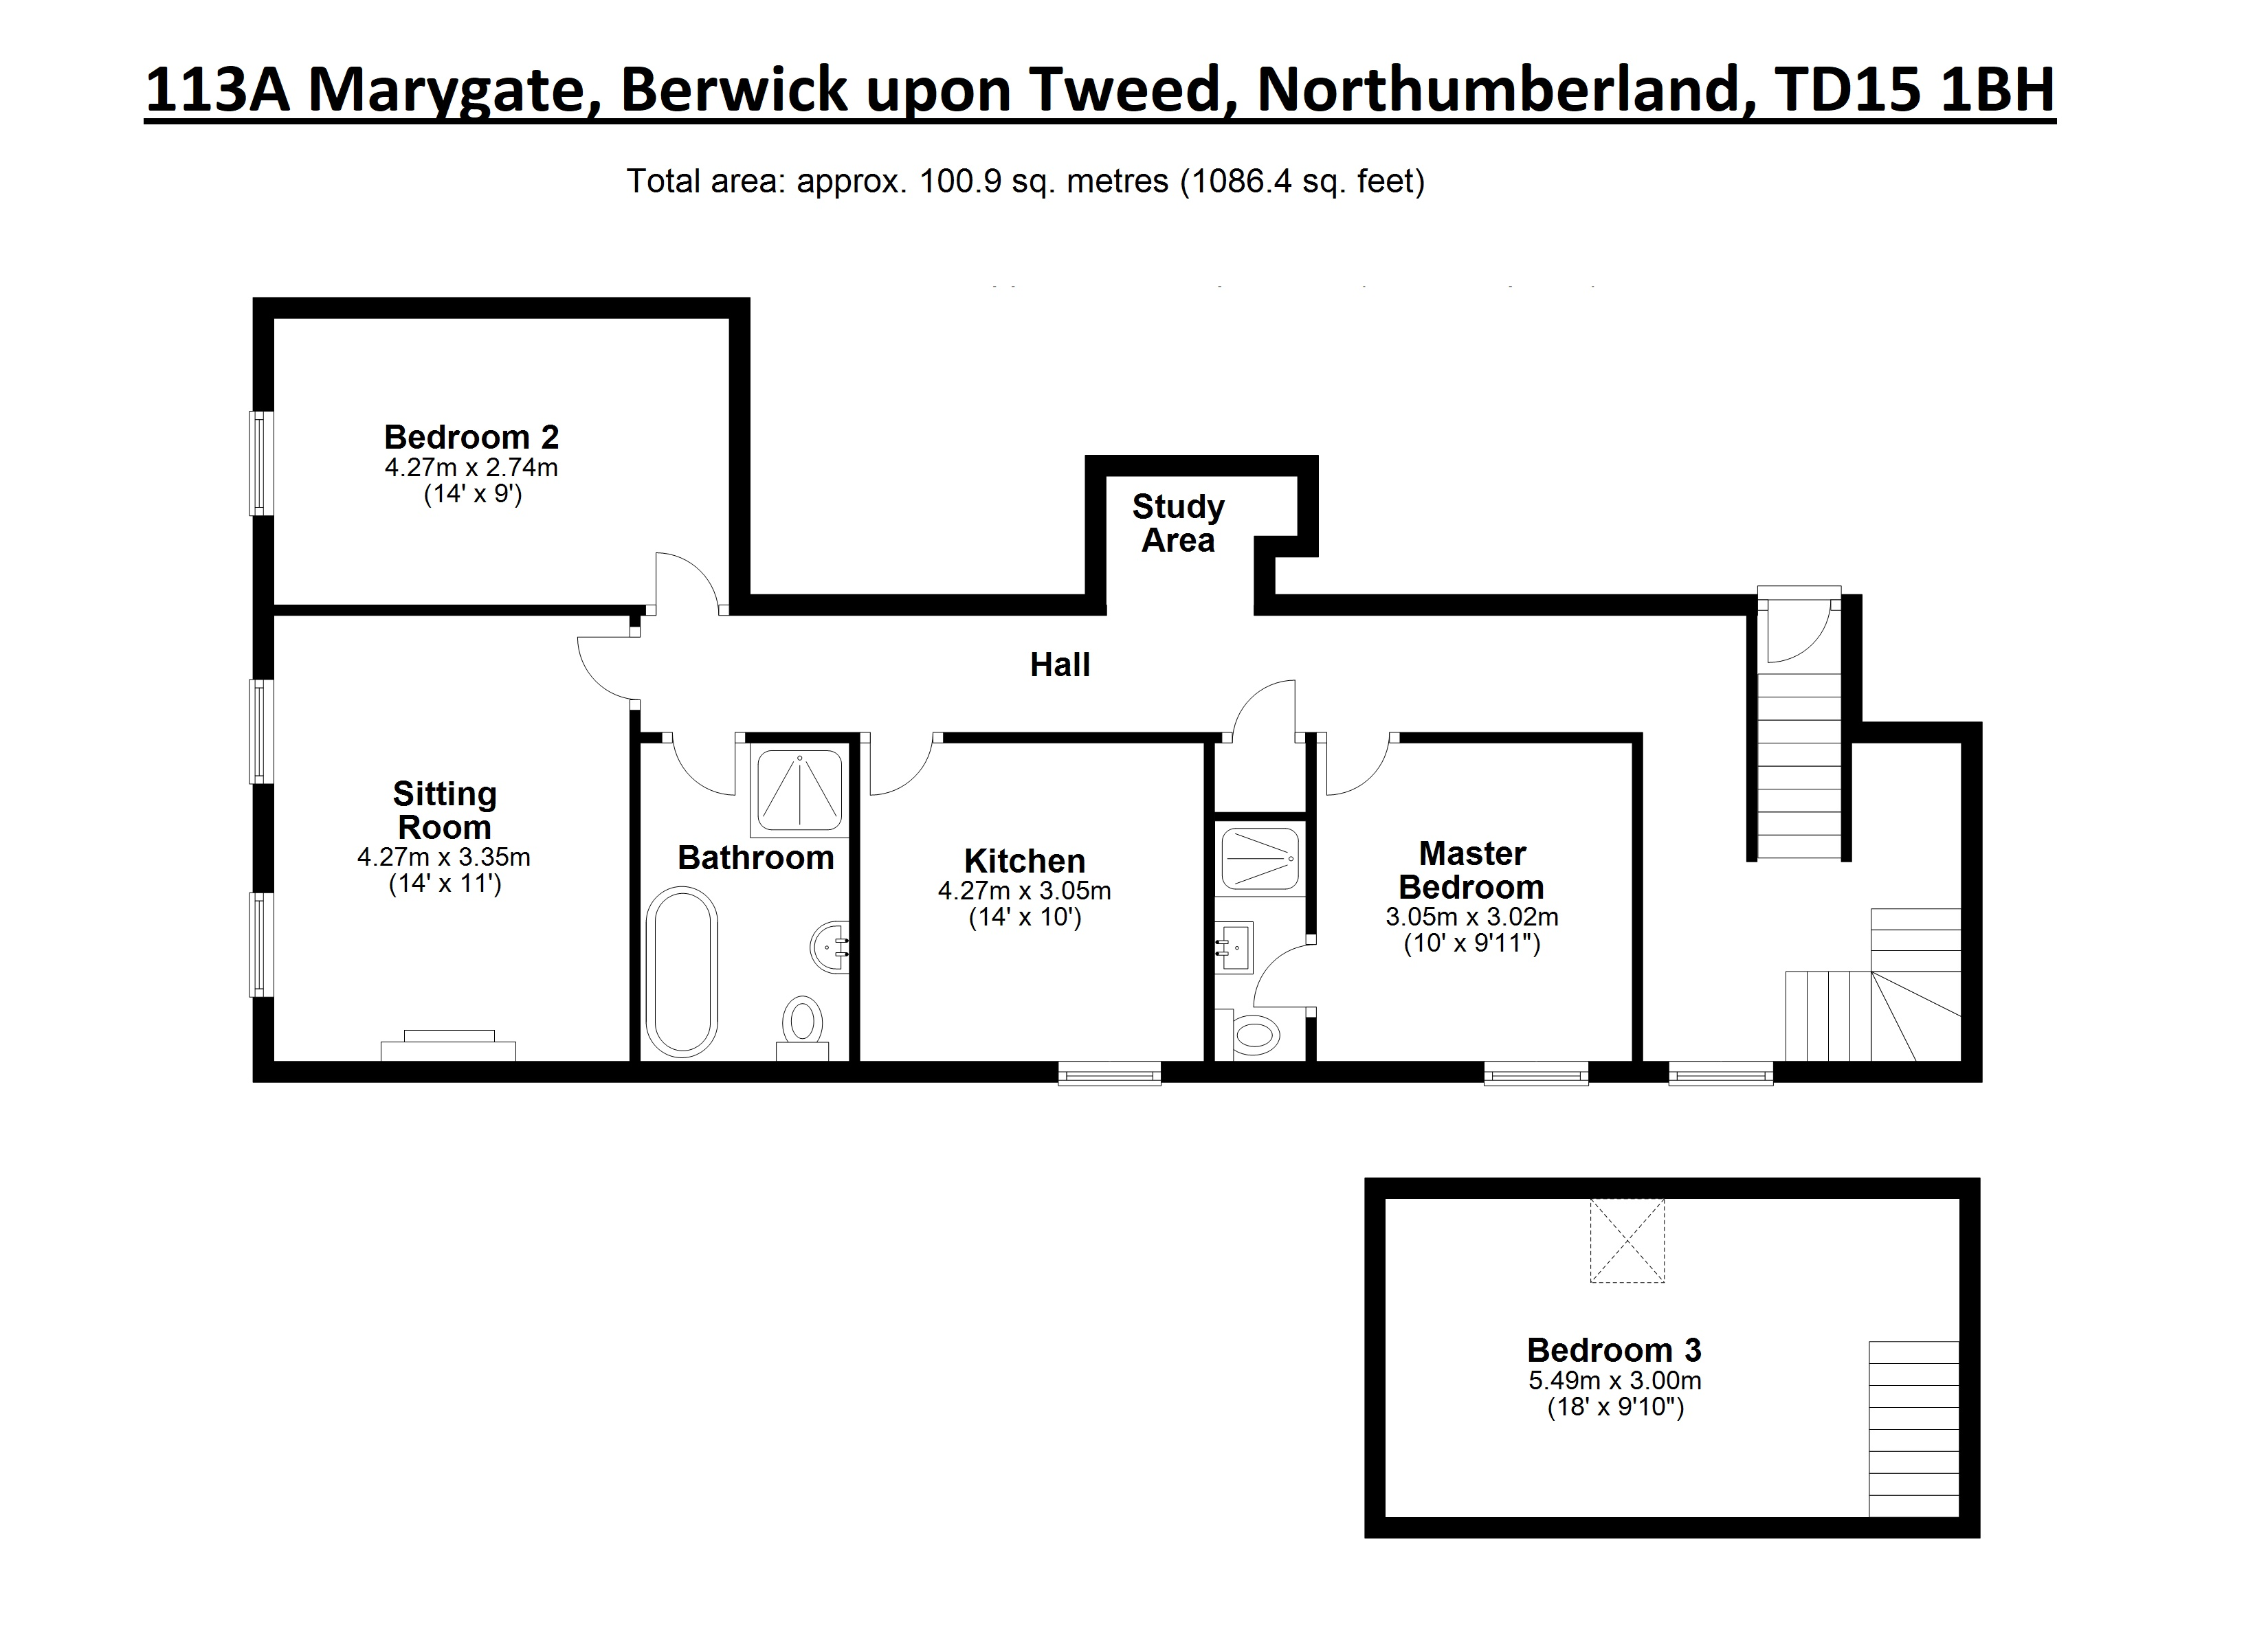 Floorplans for Marygate, Berwick-upon-Tweed, Northumberland, TD15